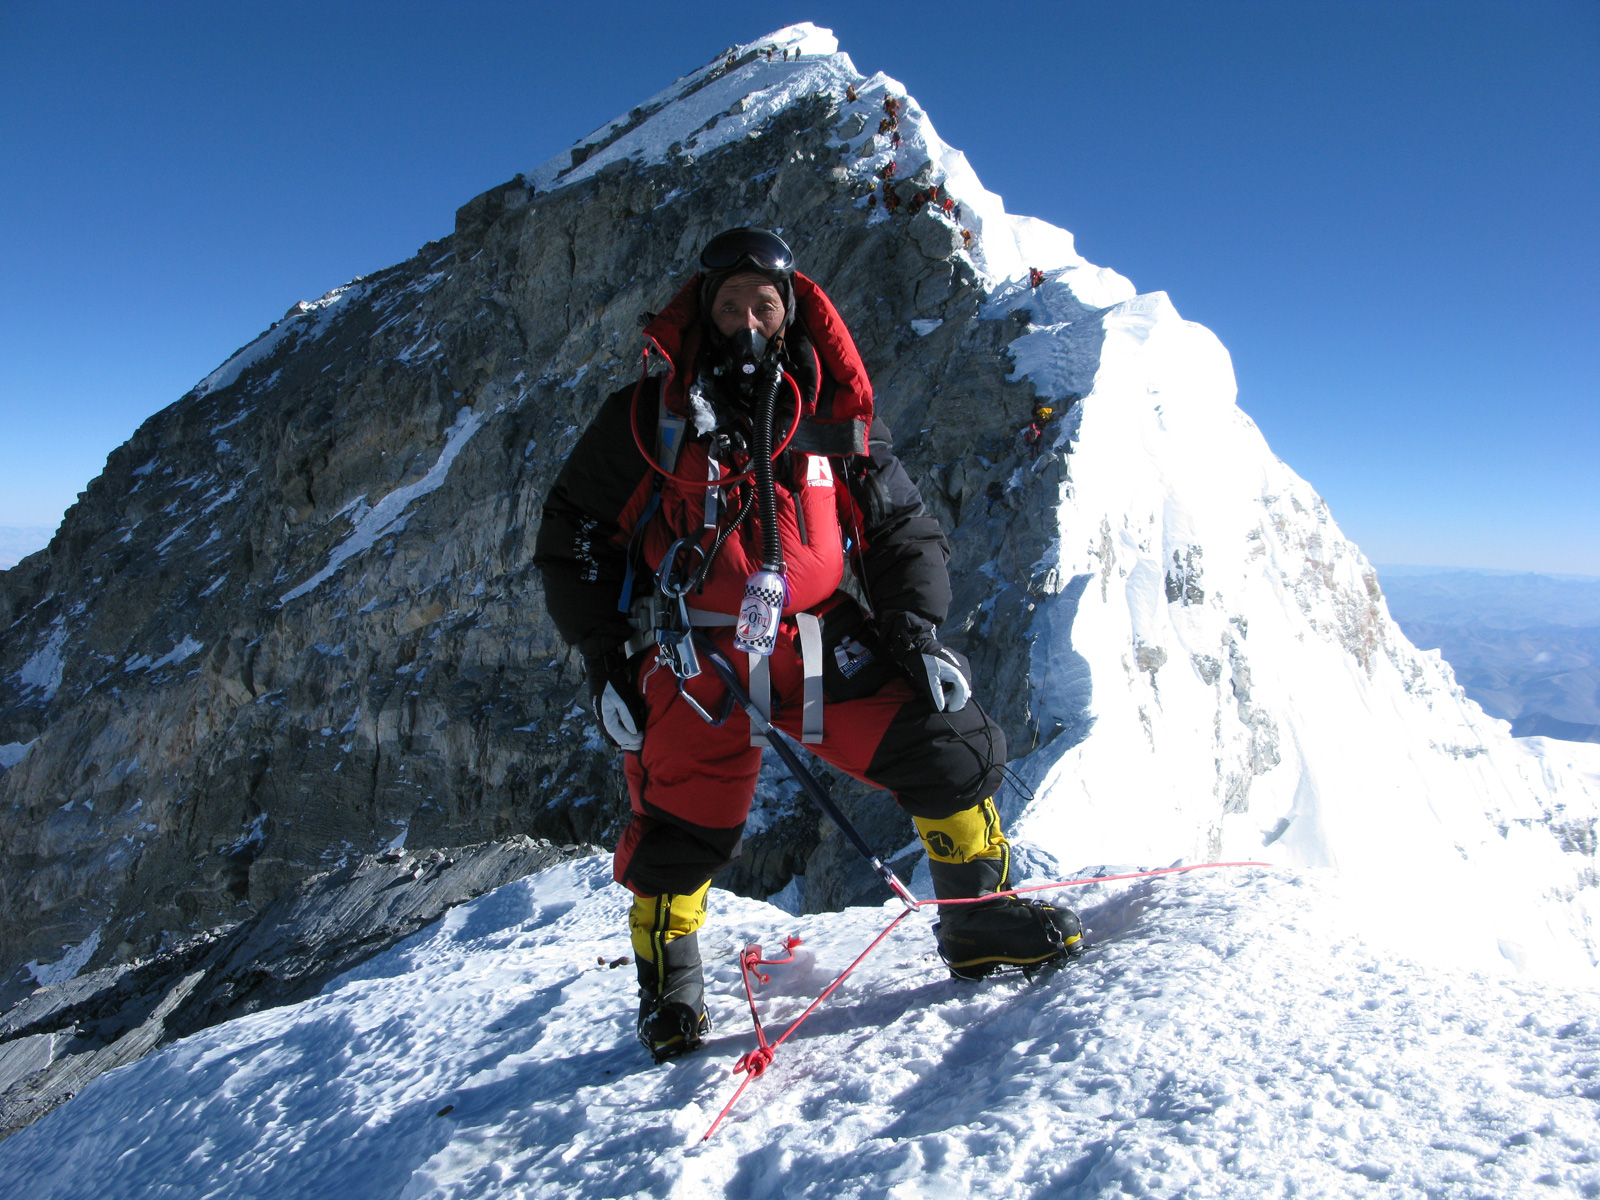 Apa Sherpa in mountaineering gear just below the peak of Mt Everest.